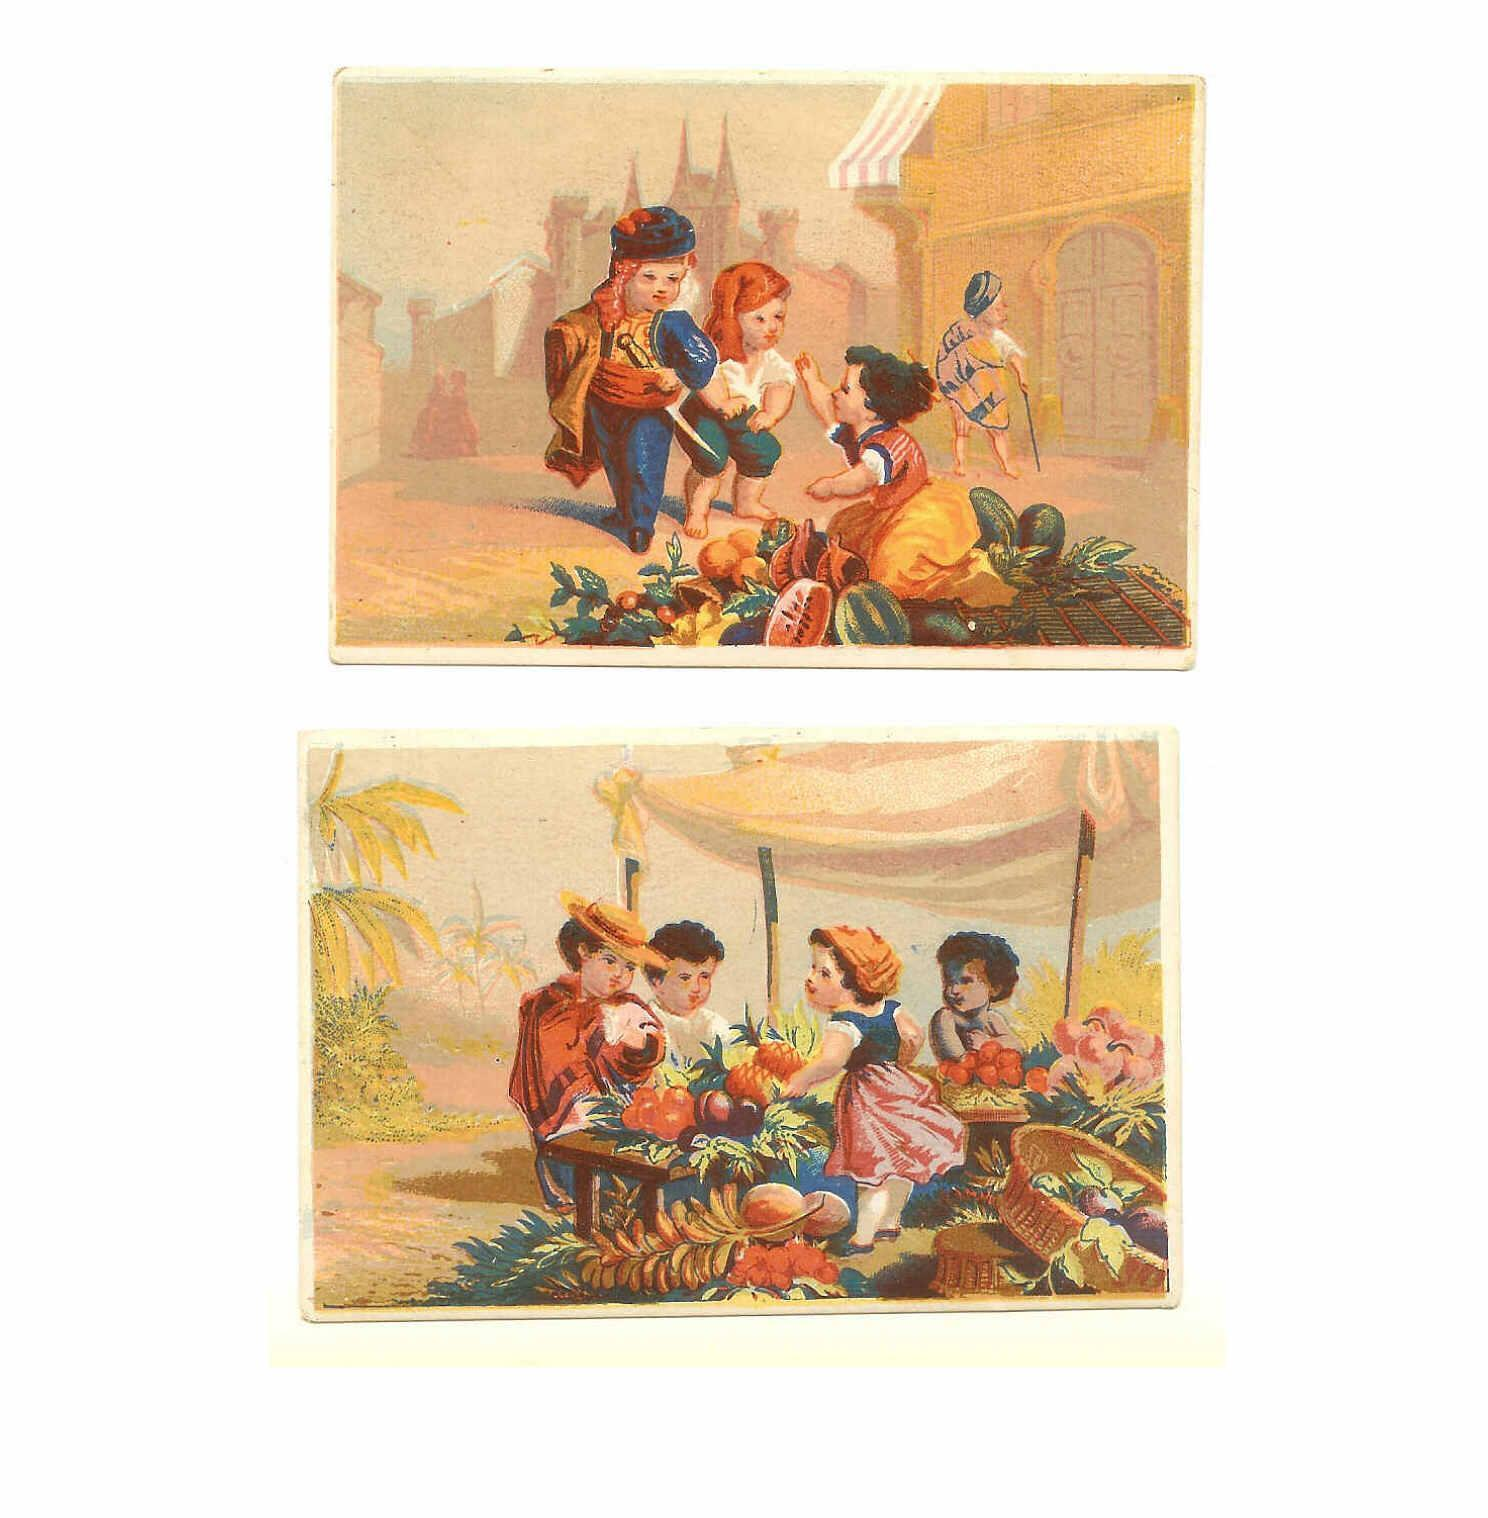 2 VICTORIAN Trade Cards - Dealing at the Farmers Market!